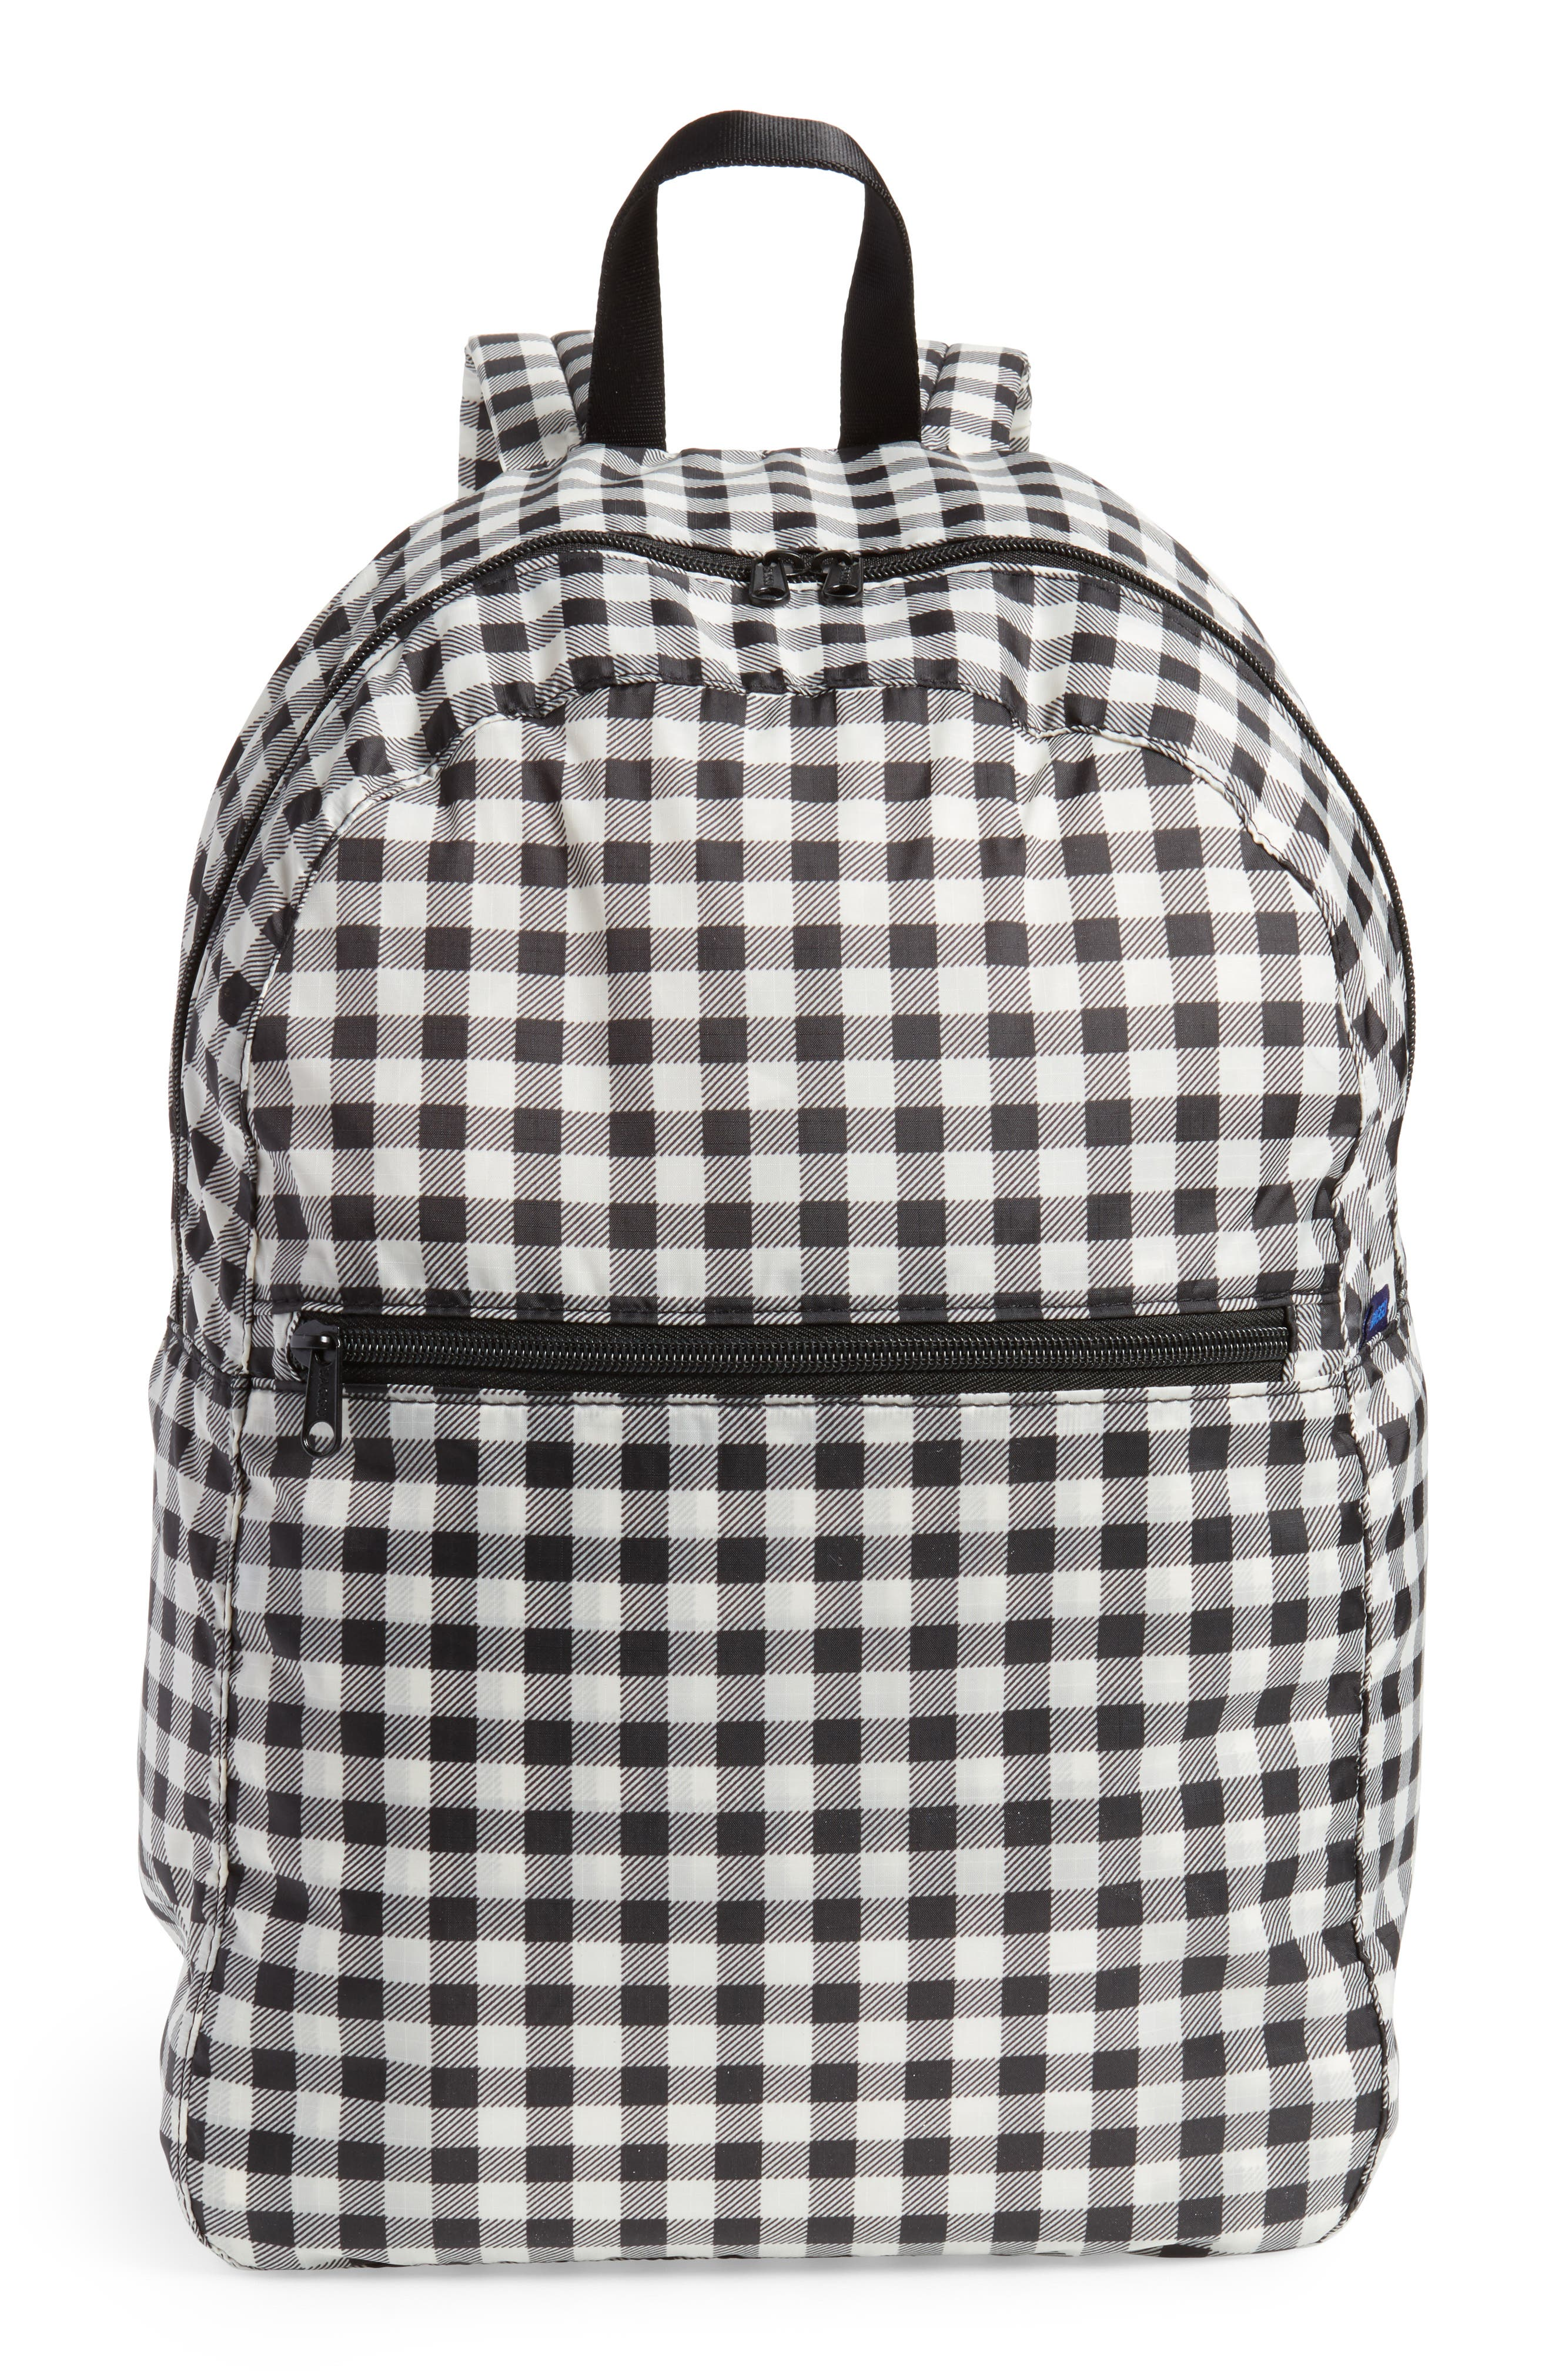 Ripstop Nylon Backpack,                         Main,                         color, 006